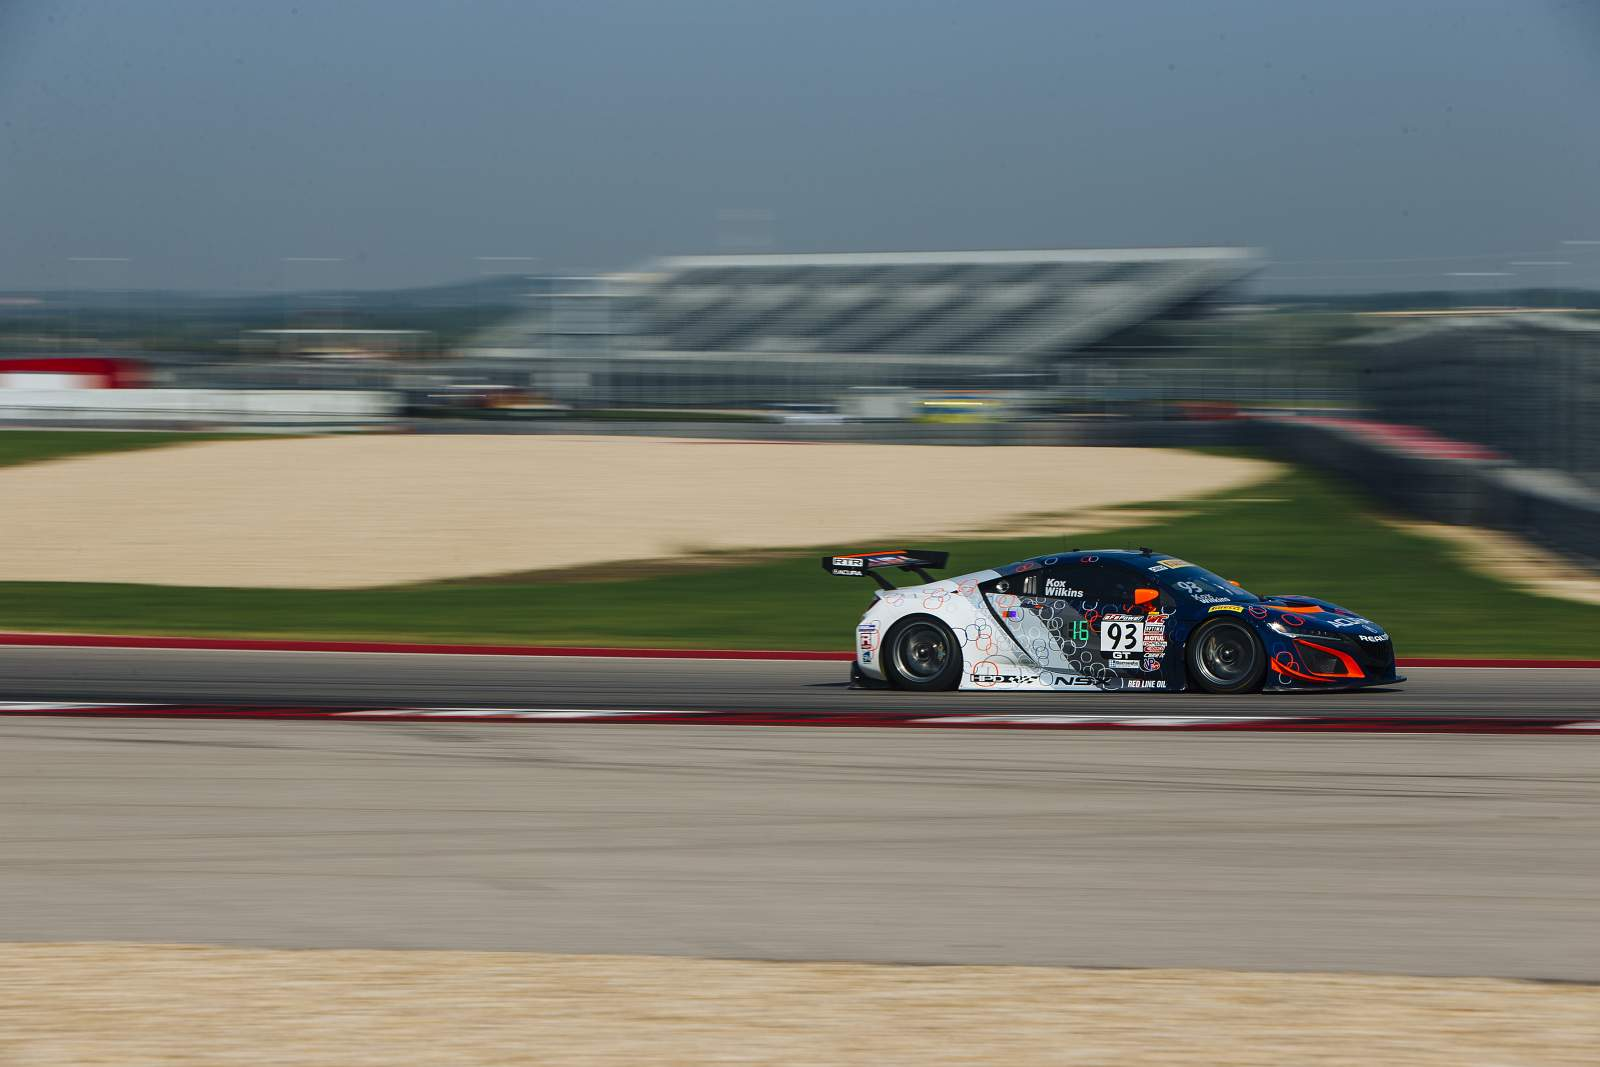 peter-kox-realtime-racing-pirelli-world-challenge-cota--003